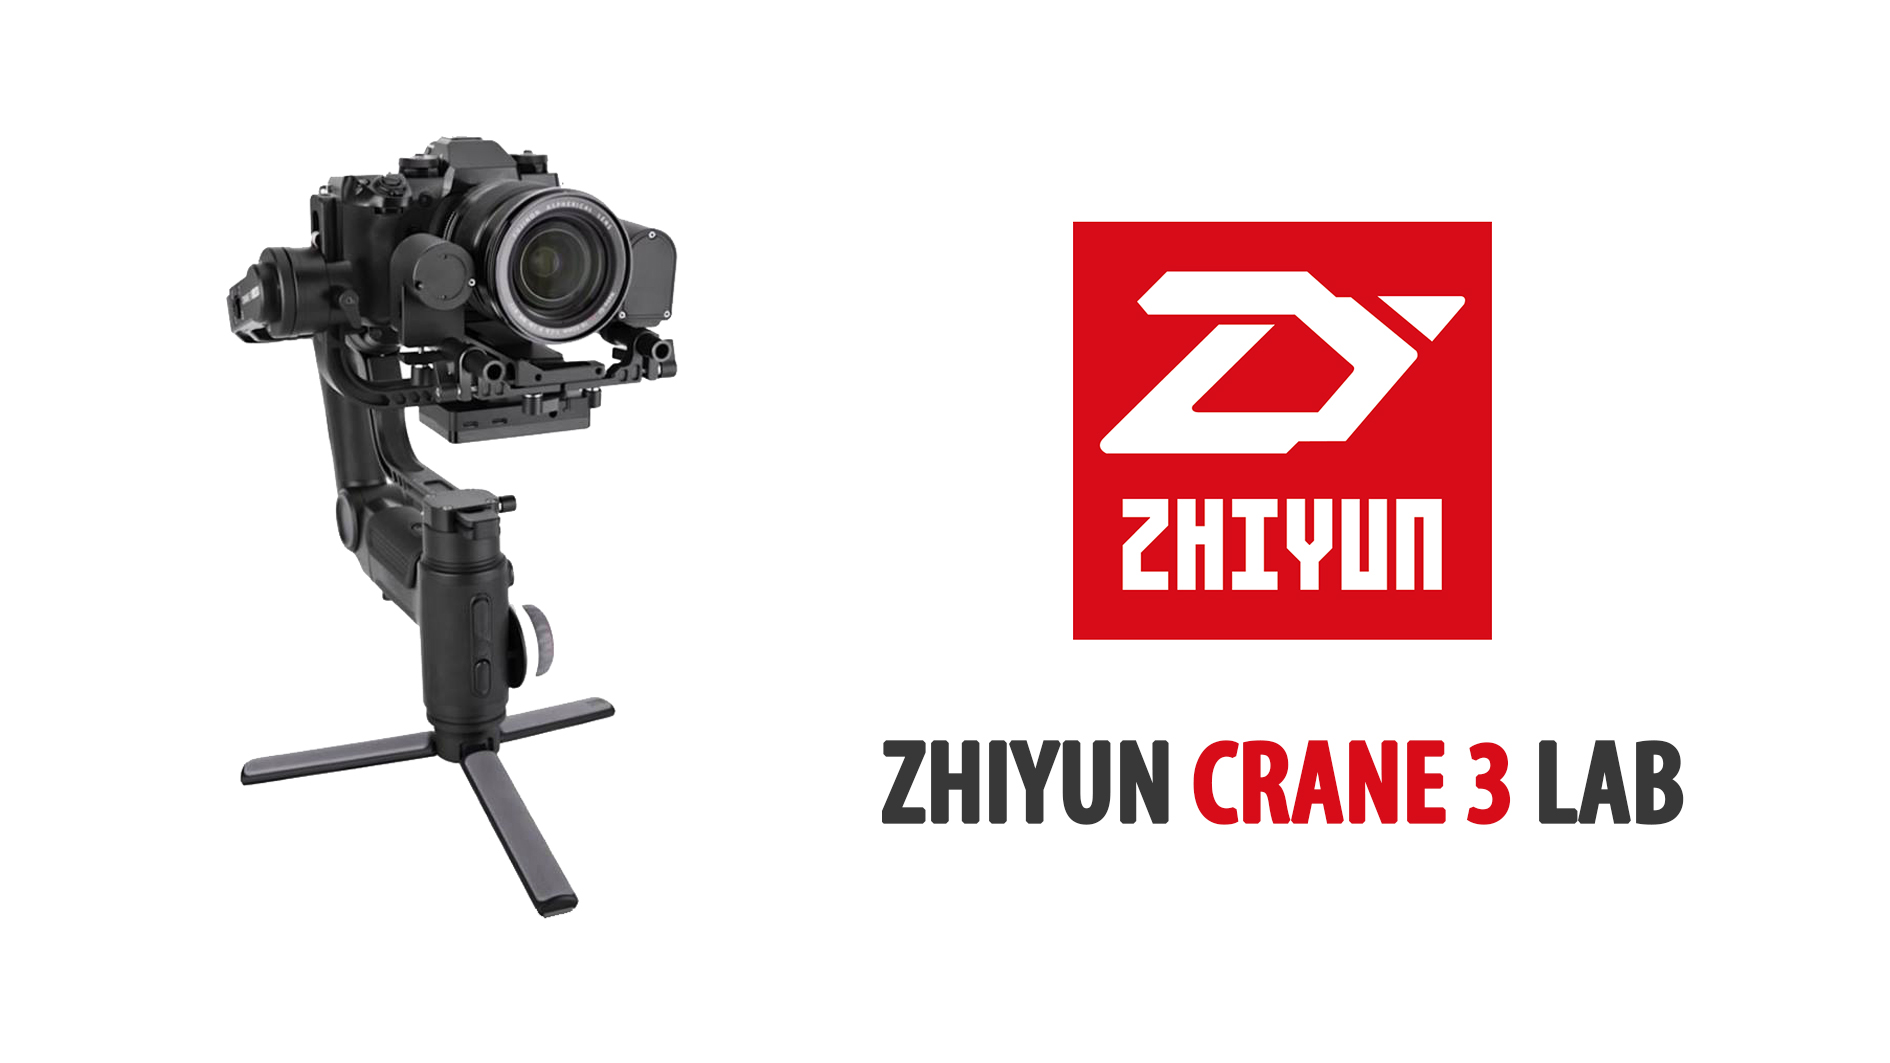 Zhiyun-Tech Crane 3 LAB 4.5 KG / Streaming Pro Gimbal